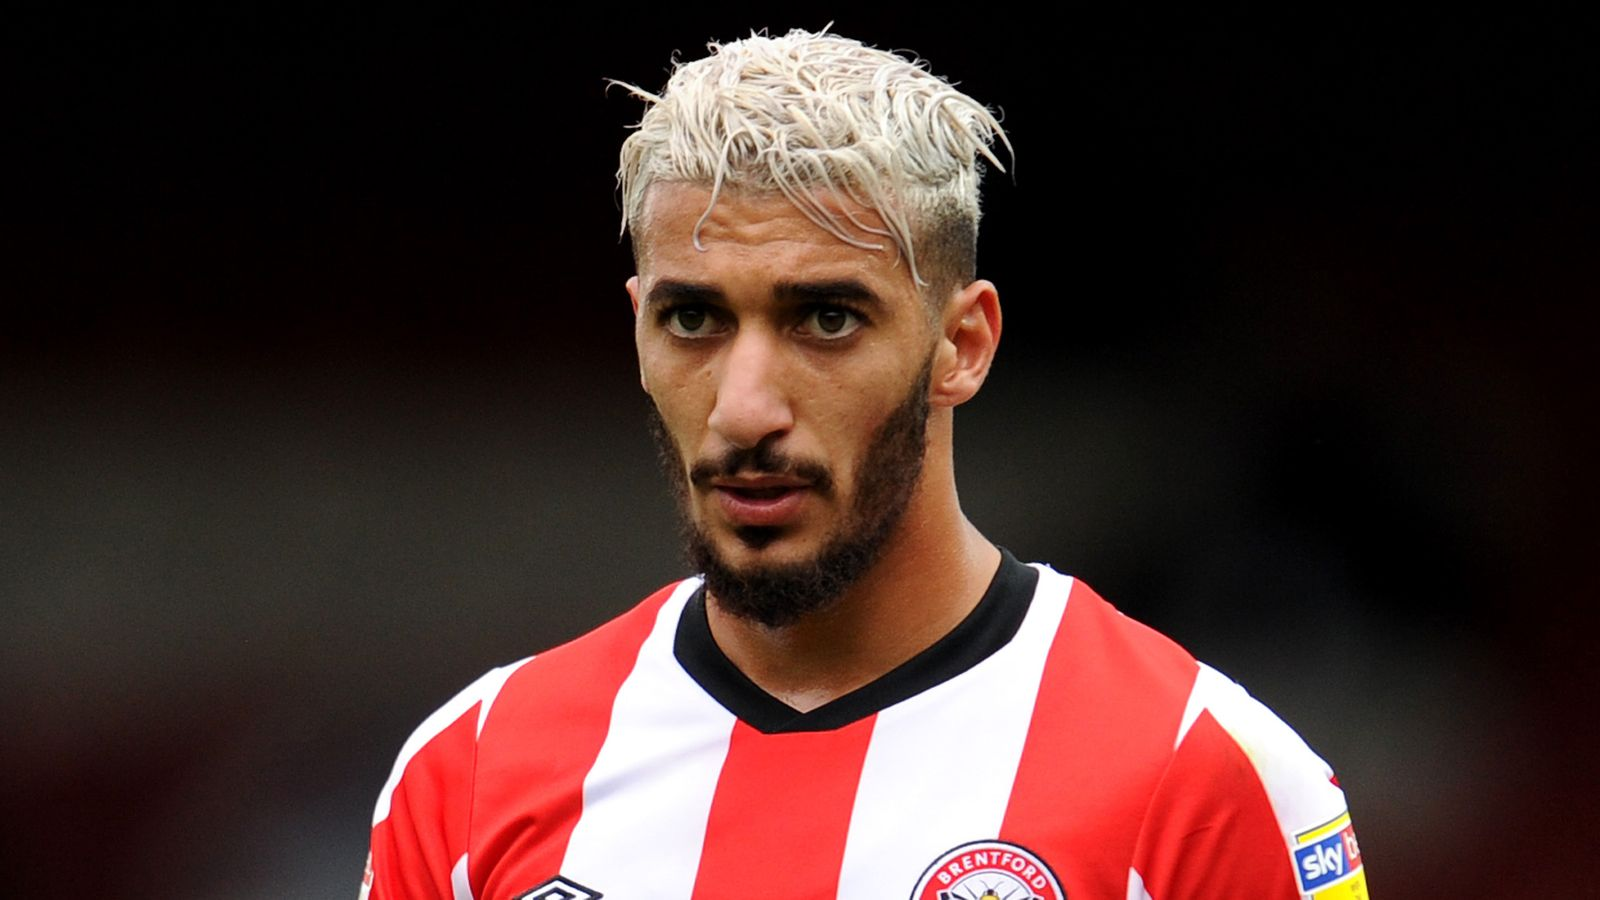 After a difficult transfer window beset by a stringent budget, West Ham are on the verge of completing the £30m signing of Brentford forward Said Benrahma before Friday's transfer deadline.